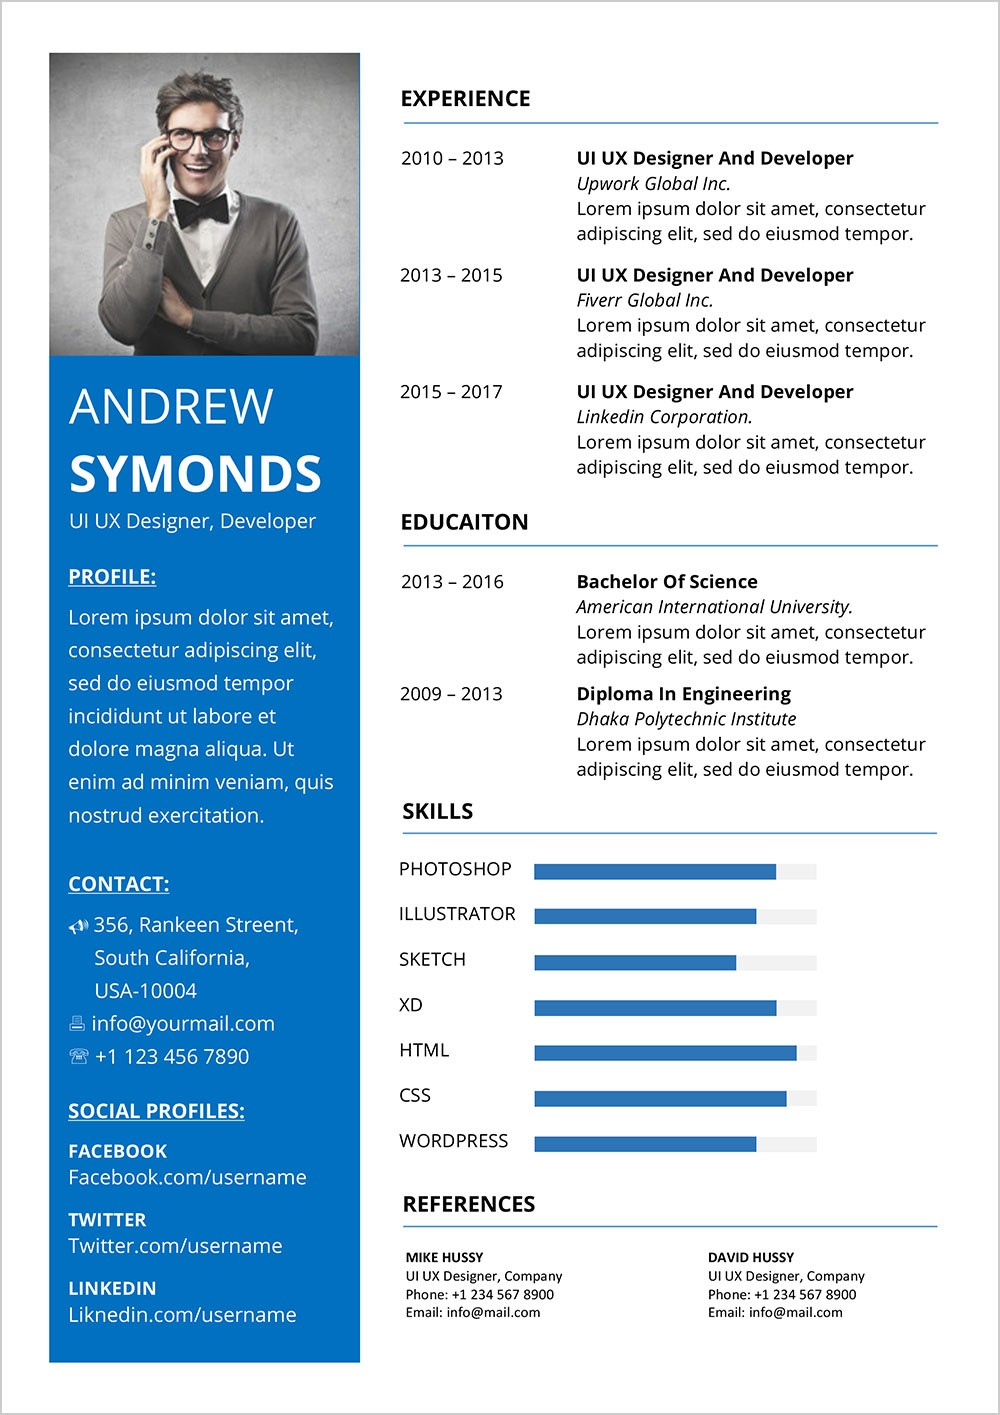 resume design format  Free Modern Resume Template In Word DOCX Format - Good Resume - resume design format